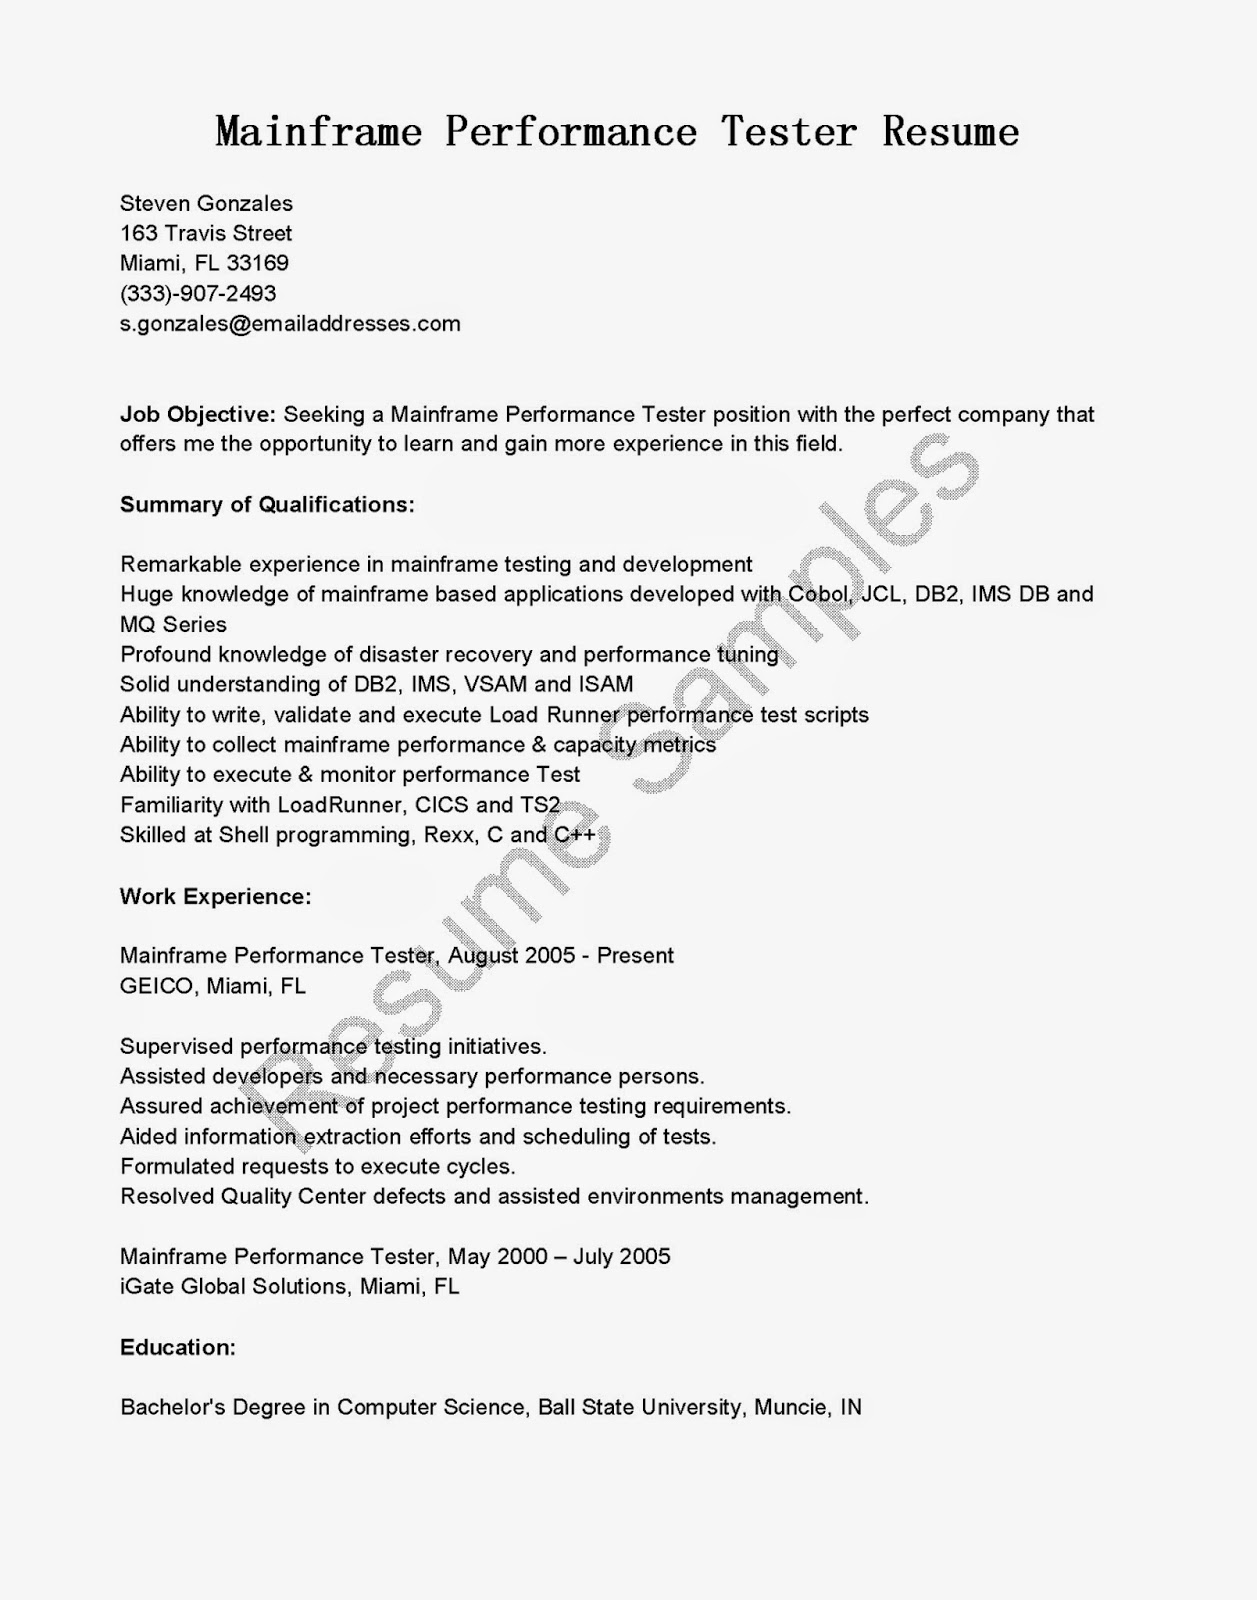 Performance Resume Example Resume Samples Mainframe Performance Tester Resume Sample